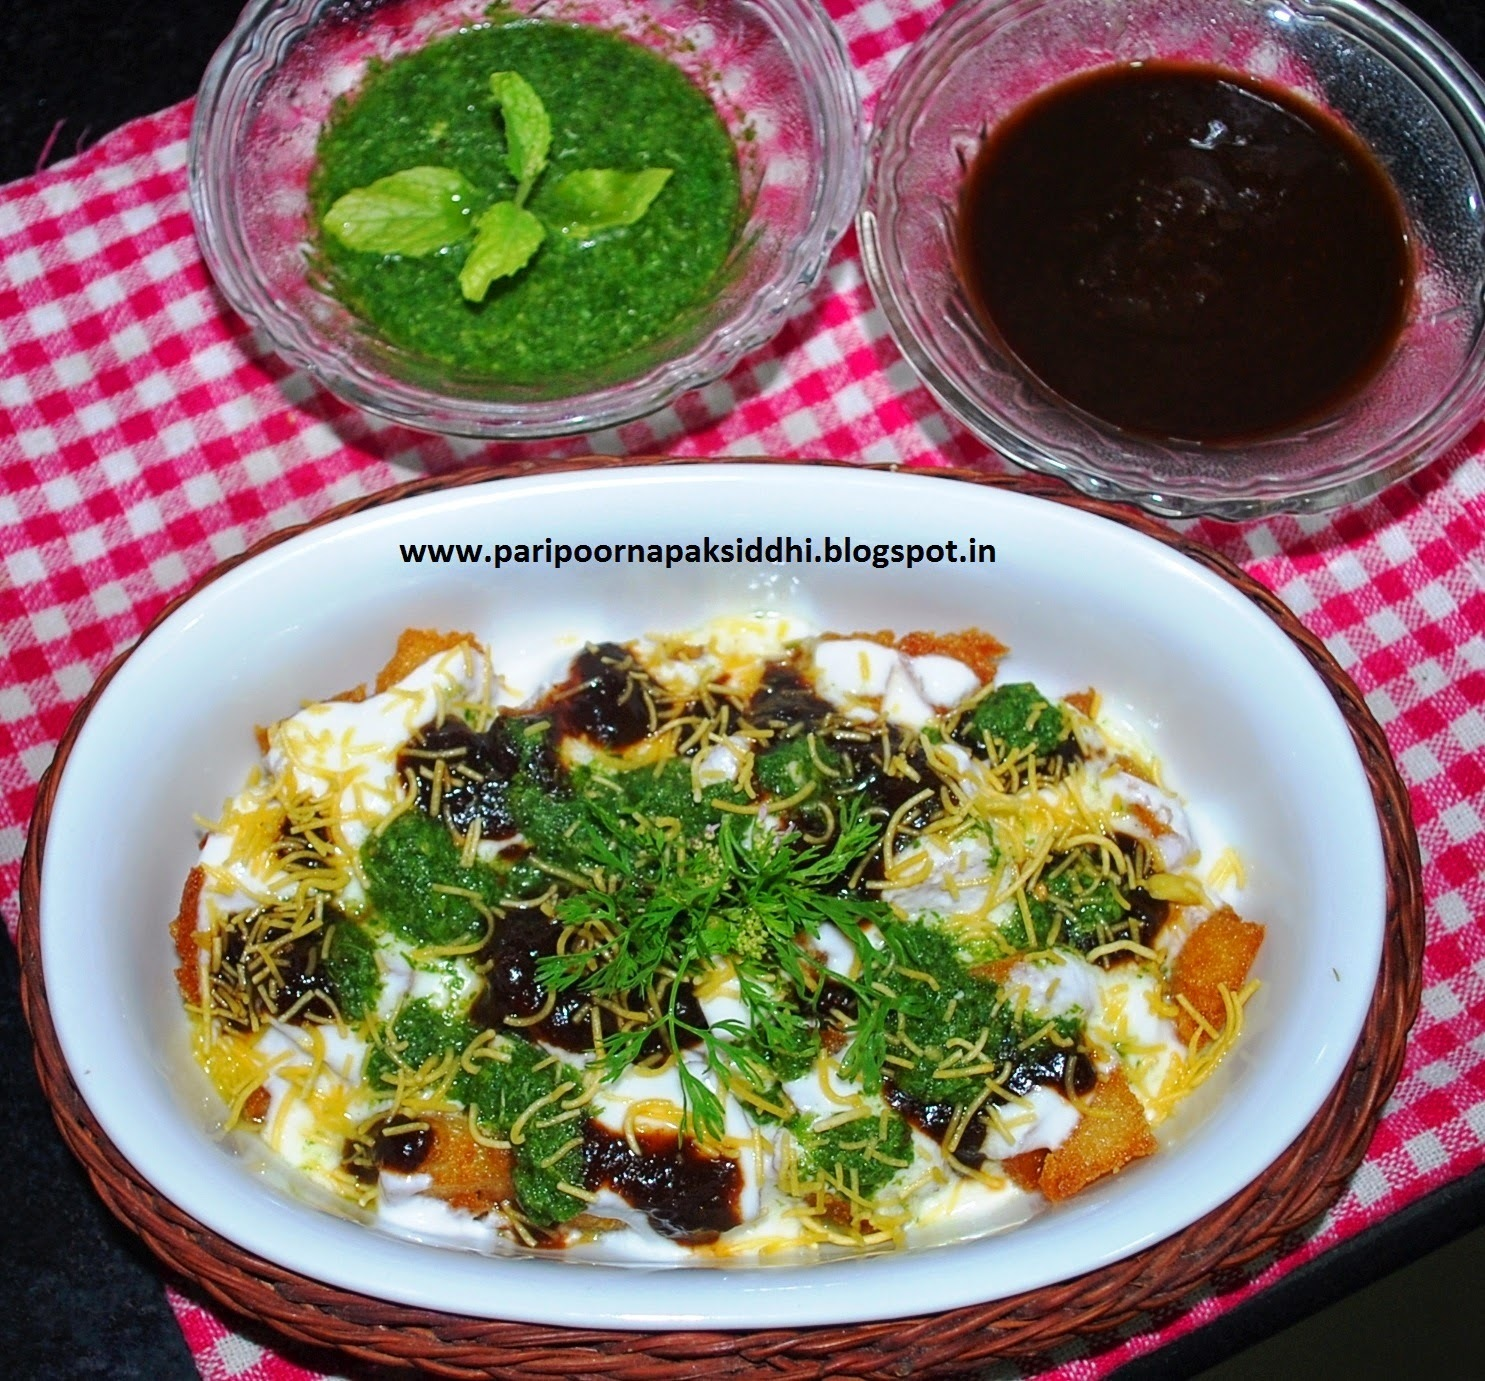 FRIED IDLI DAHI CHAAT